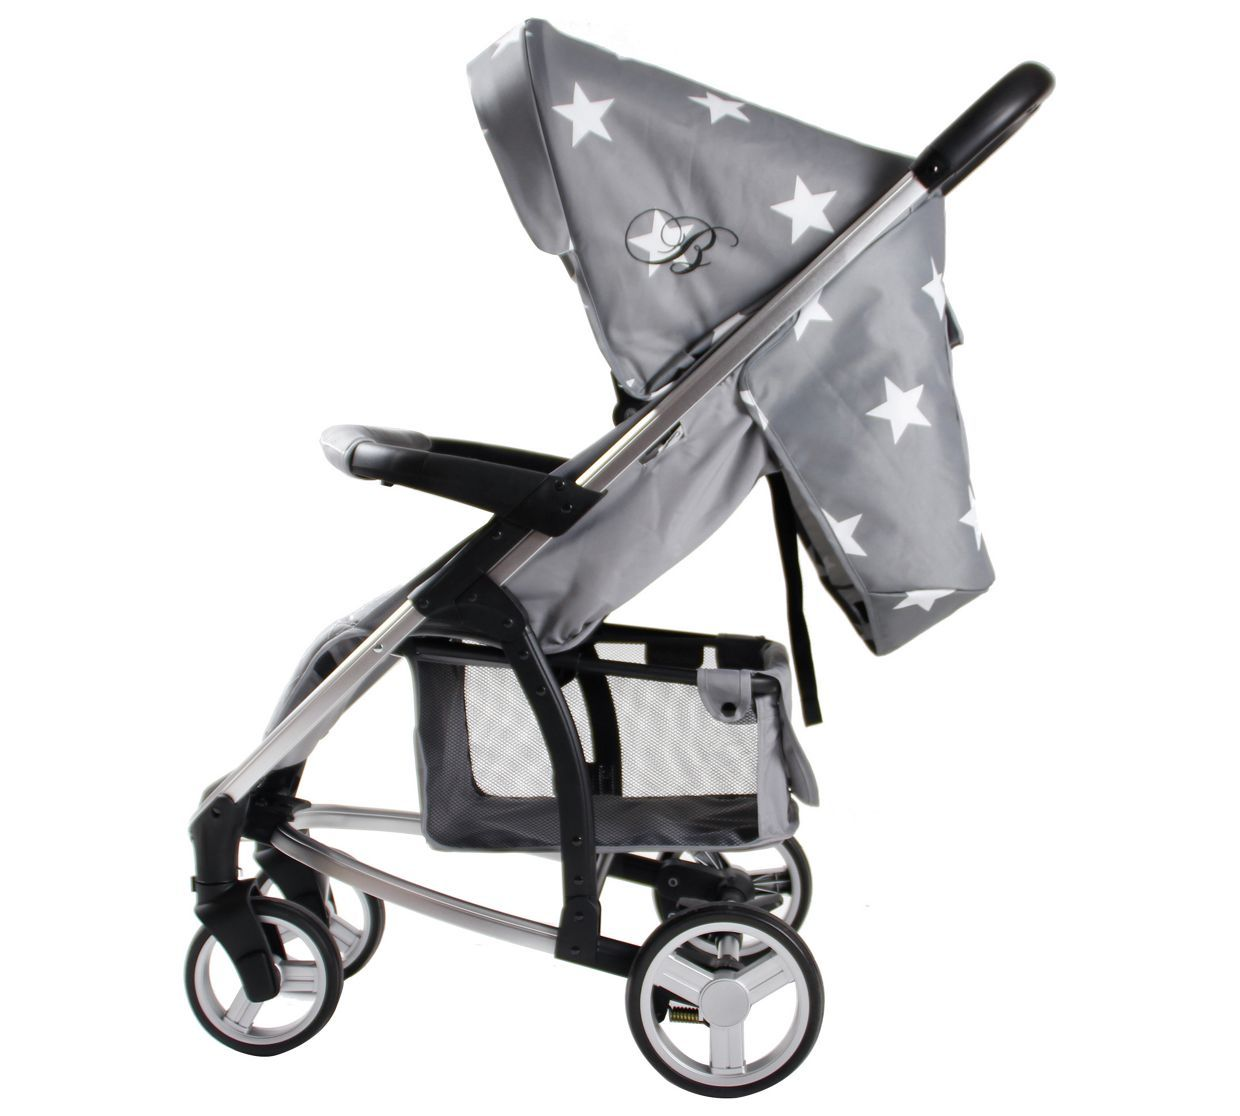 3 Wheel Prams Argos Argos Pushchairs Prams Pushchairs And Prams Baby